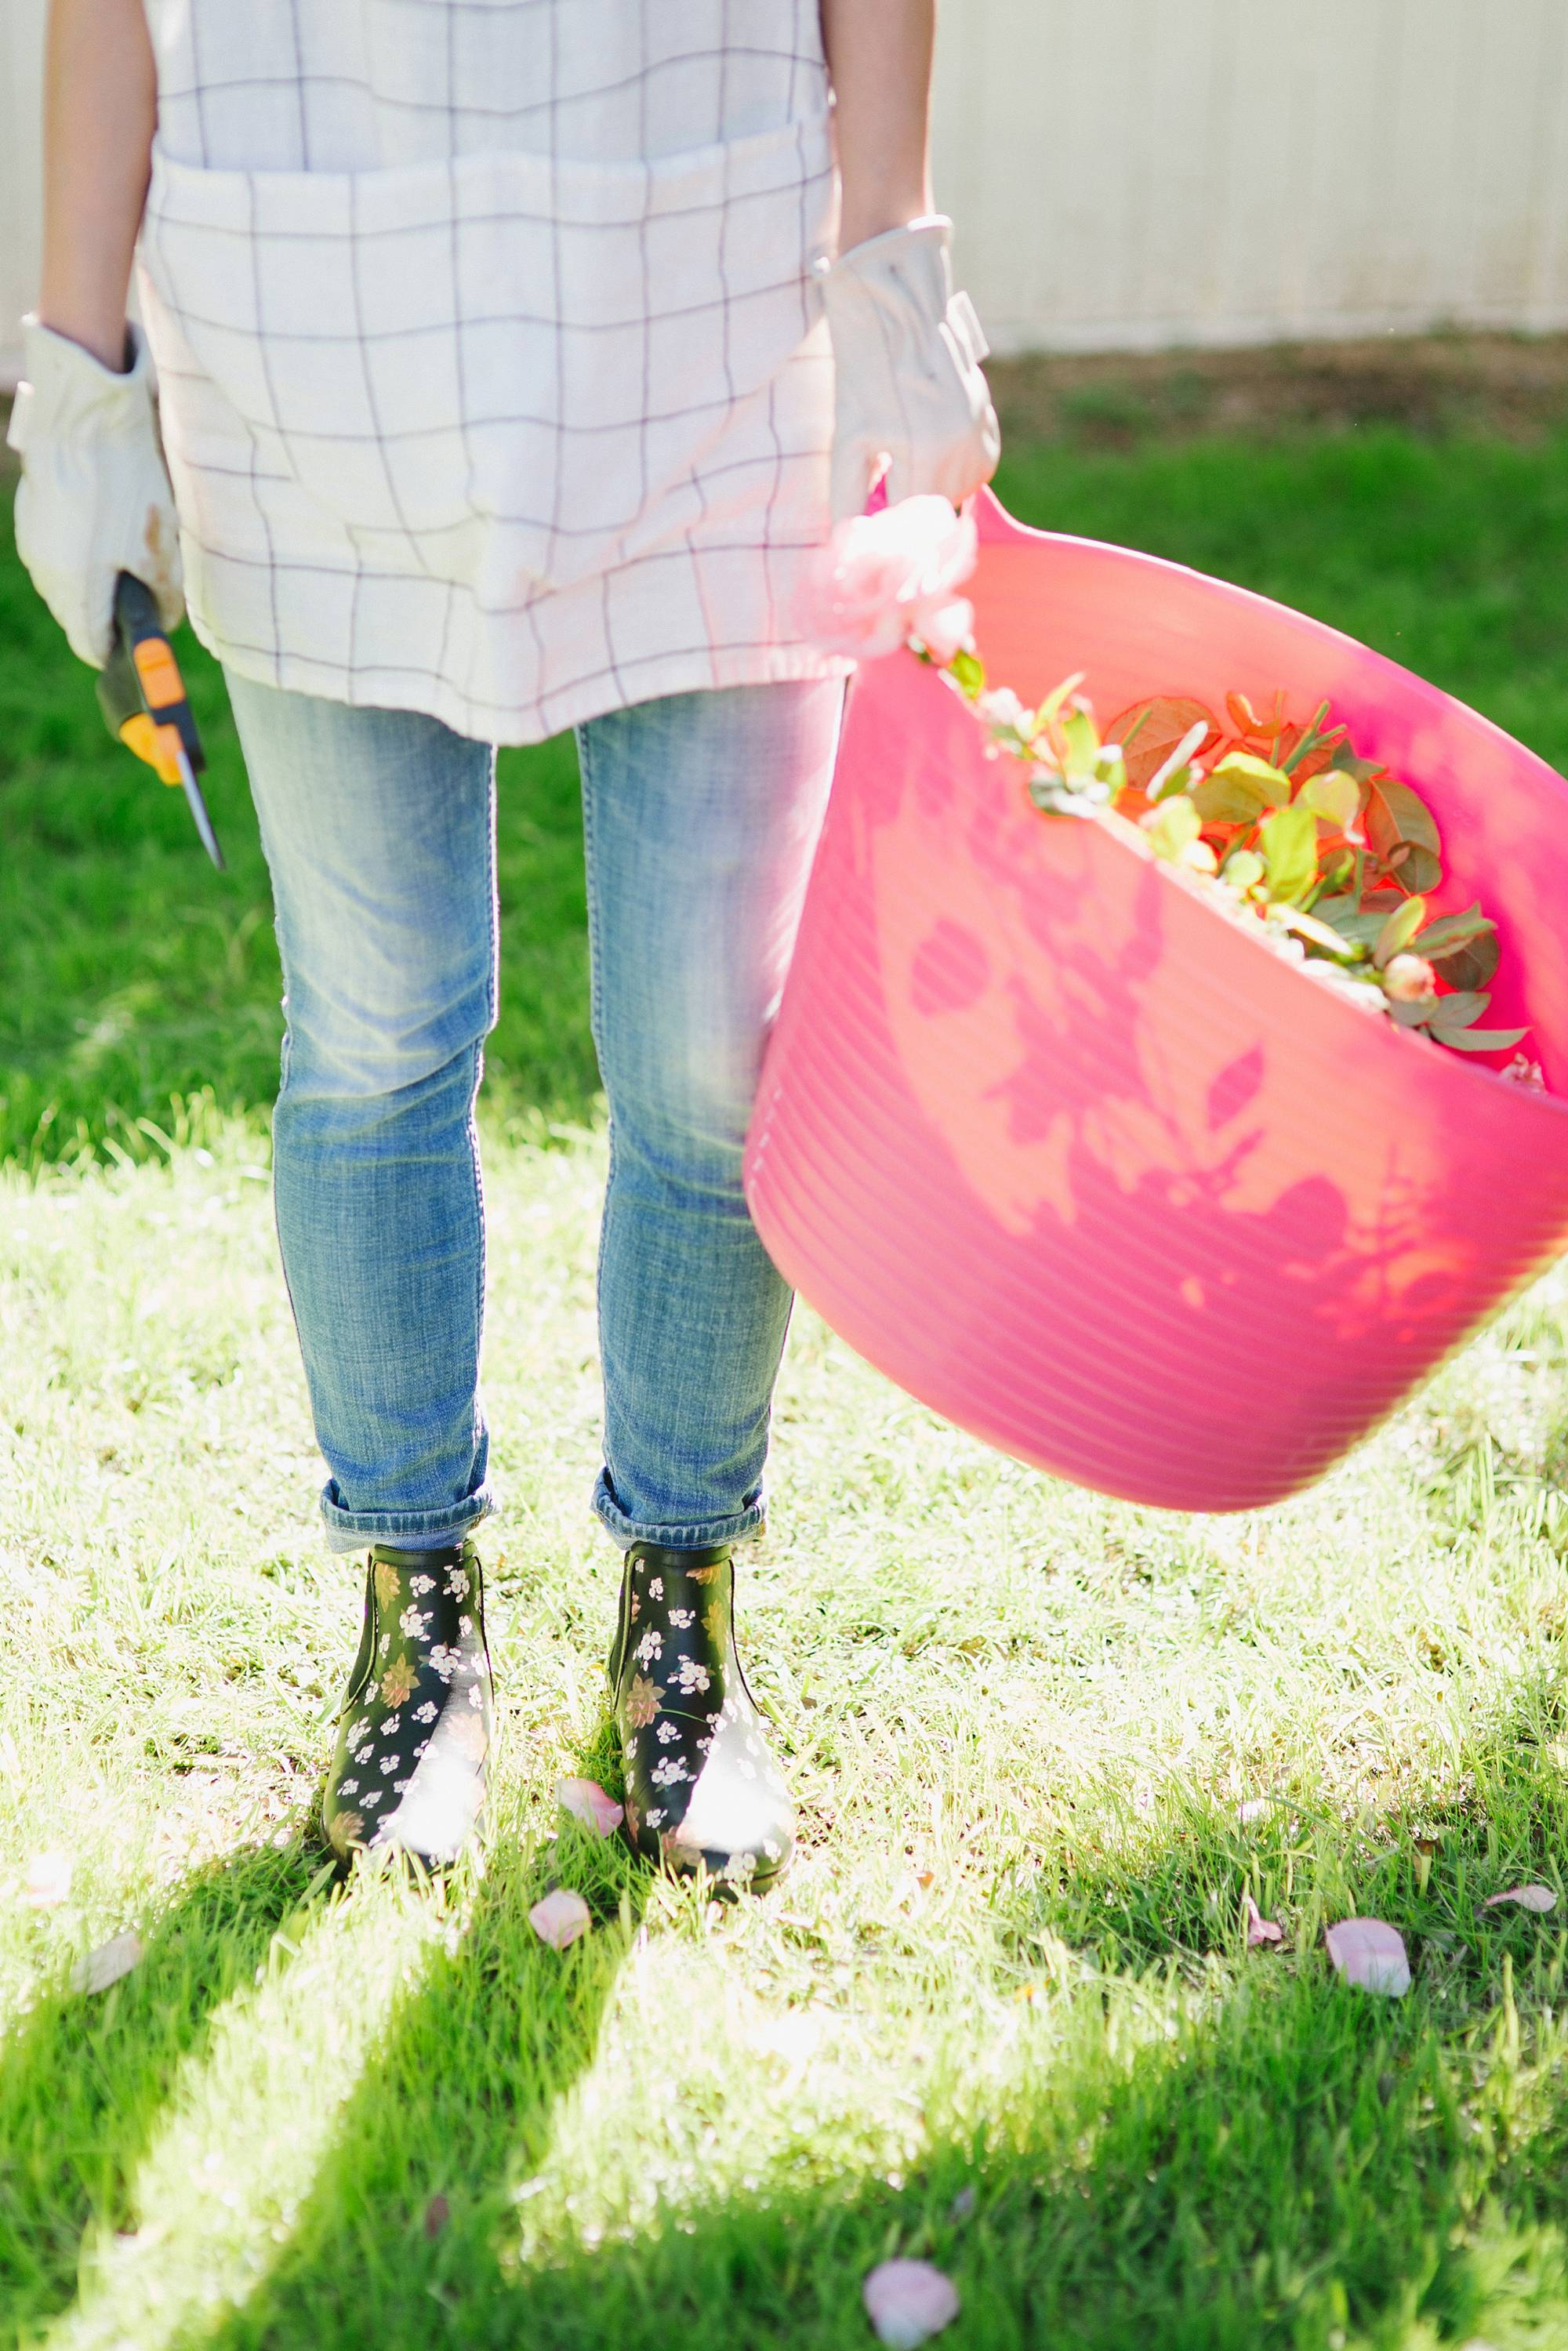 in the garden cutting roses //chai floral leather booties in black FitFlop cute booties and garden booties too with a pink tubtrug liberty London scarf in hair against white painted fence garden blog